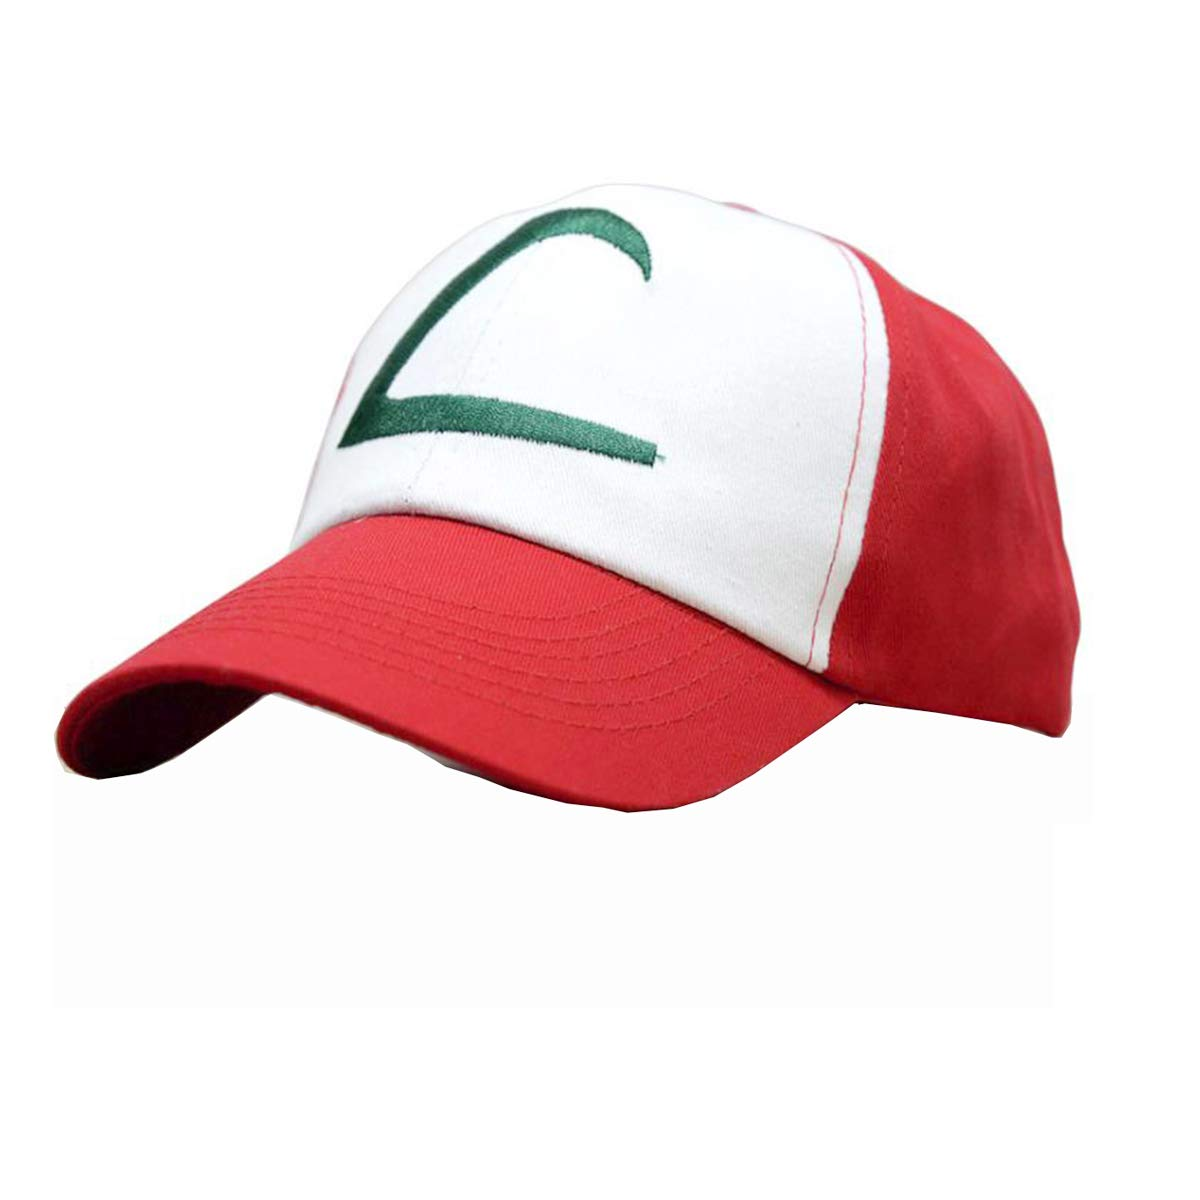 Adult /& Youth Sizes Ash Ketchum Cosplay Hat Mesh Cap with Plastic Snap Closure